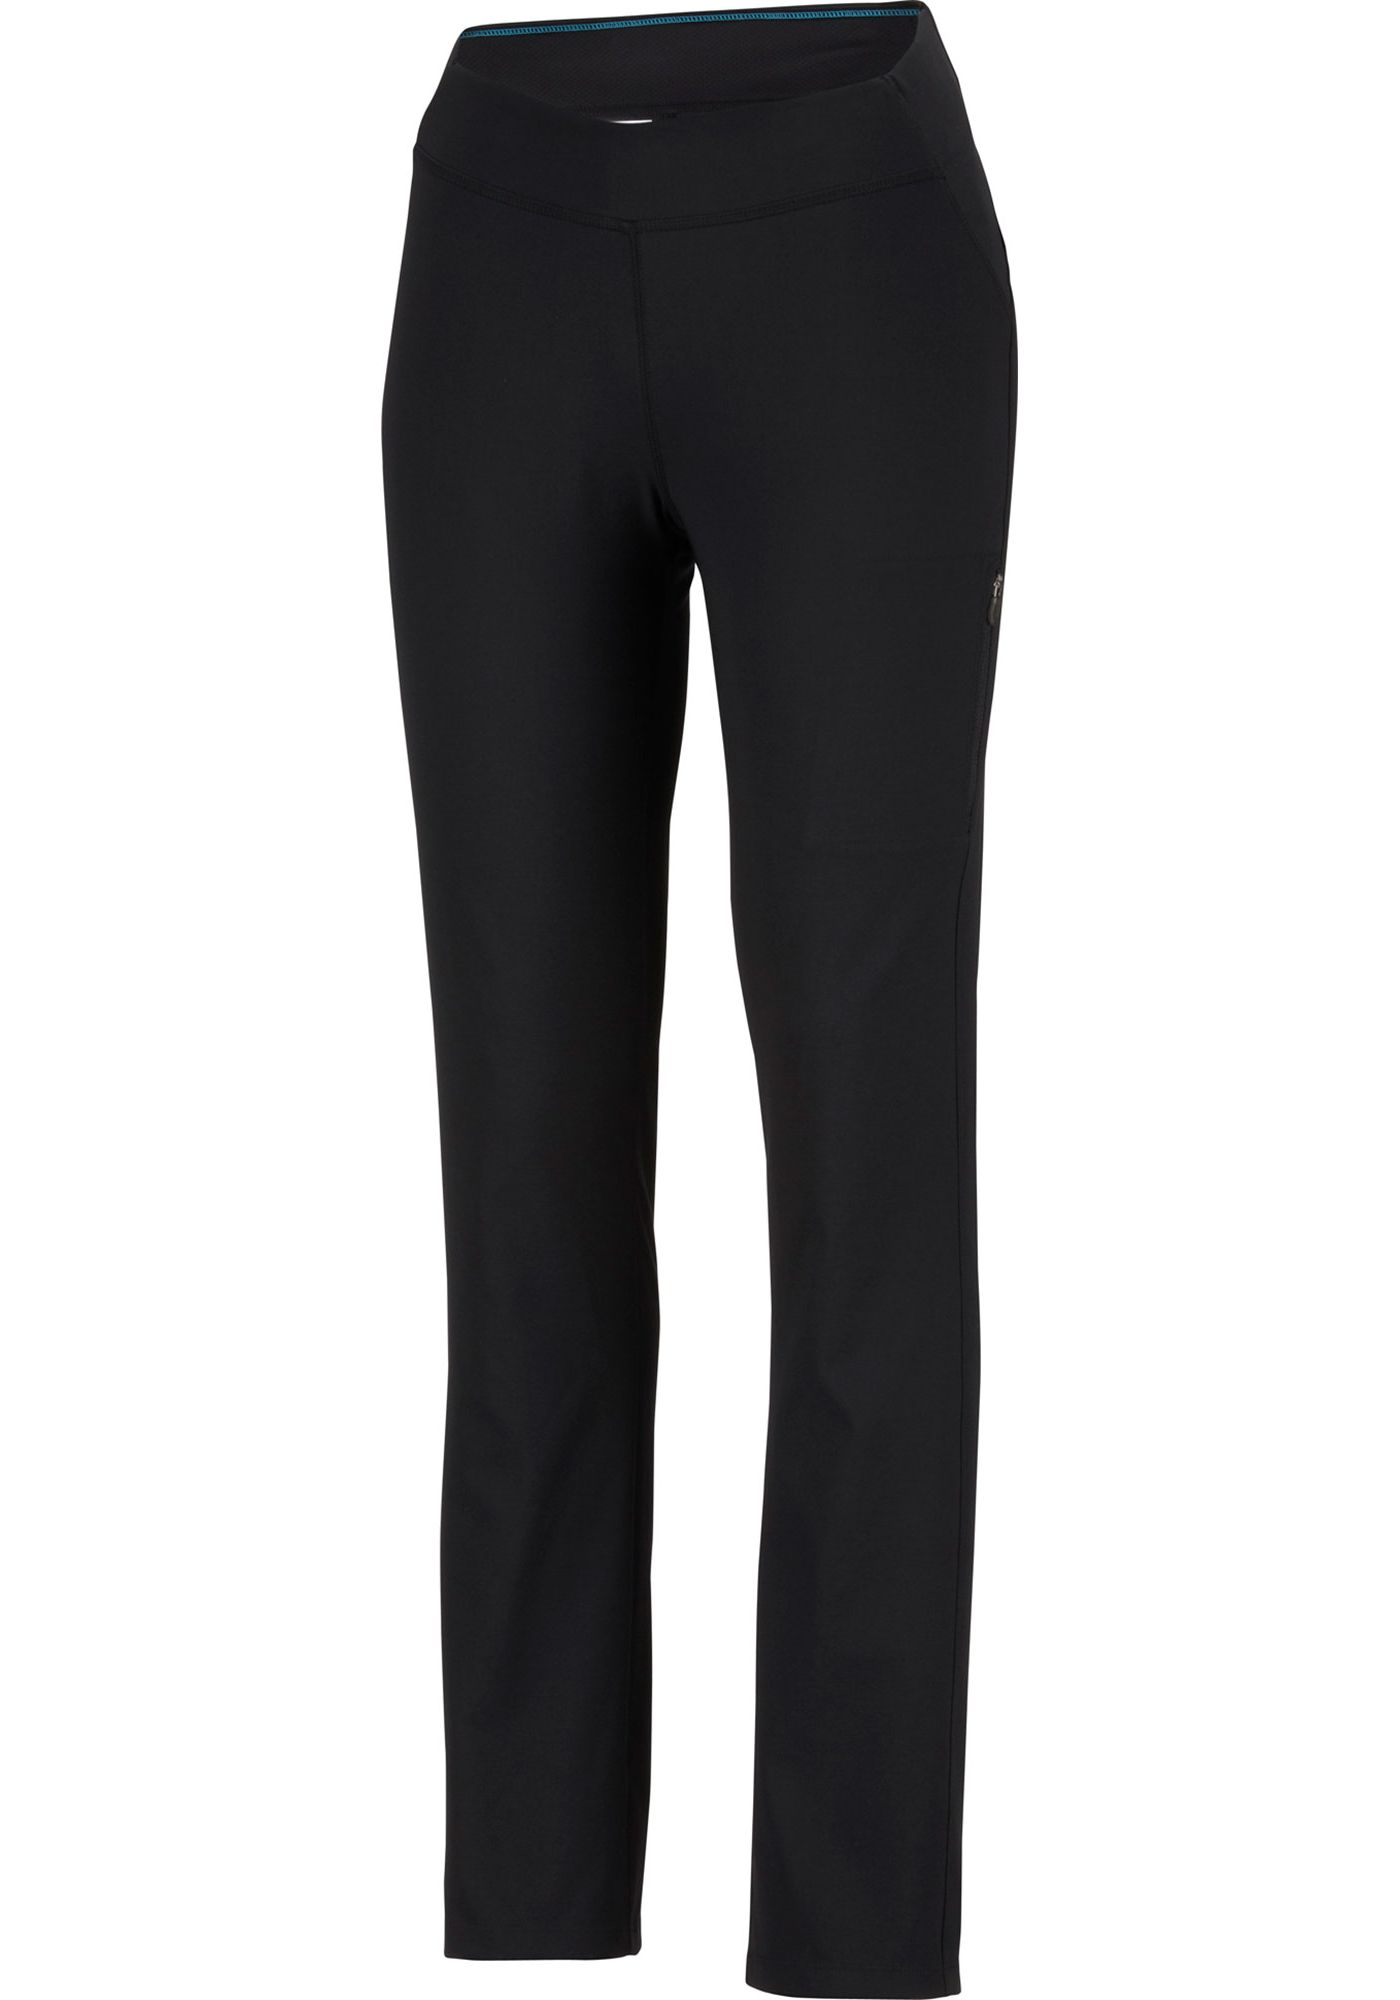 Columbia Women's Back Beauty Skinny Leg Pants